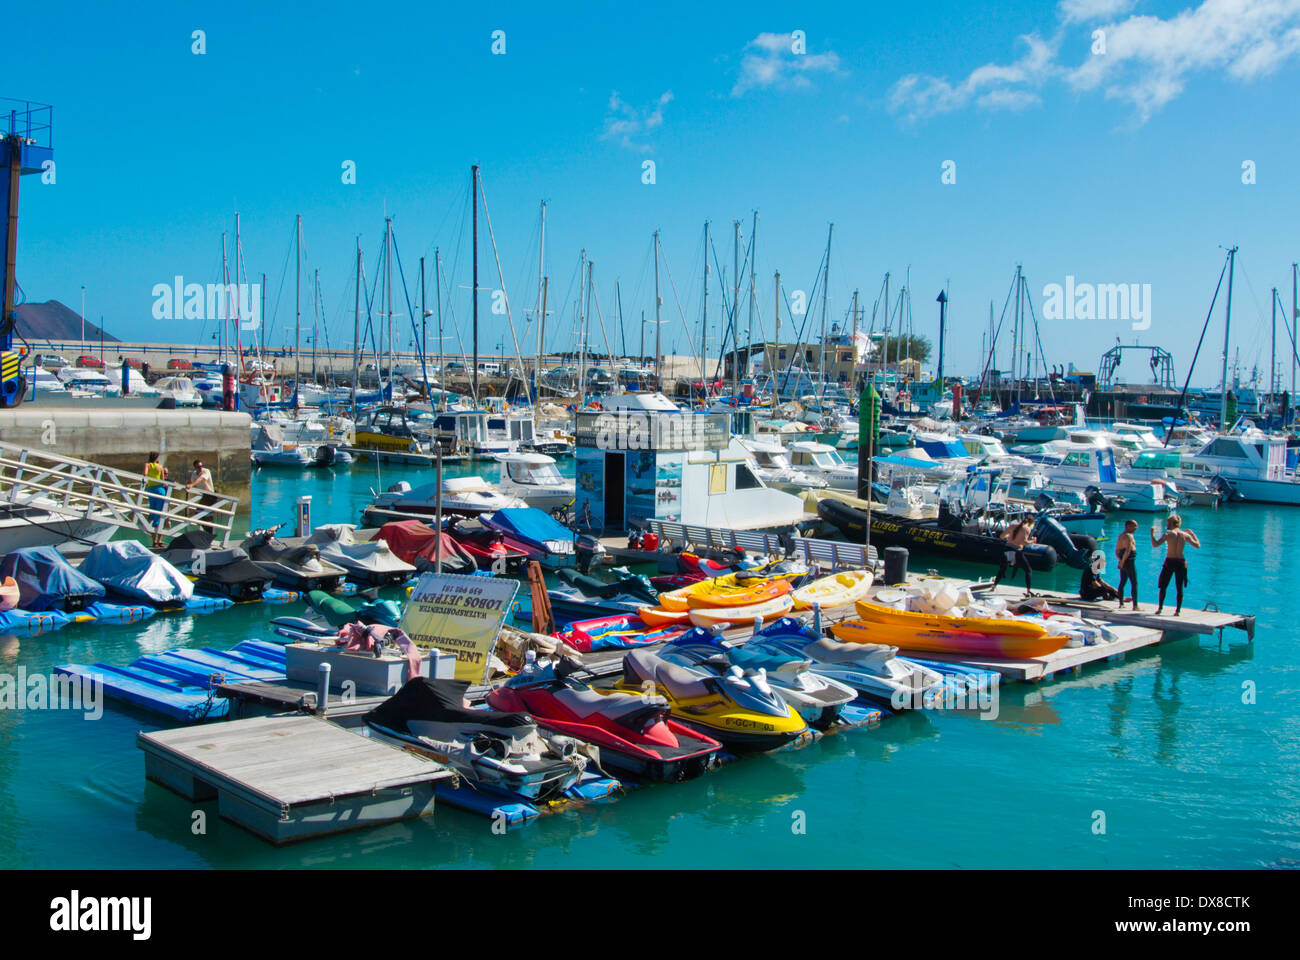 Watersports center equipment rental, Puerto de Corralejo, the port, Corralejo, Fuerteventura, Canary Islands, Spain, Europe - Stock Image